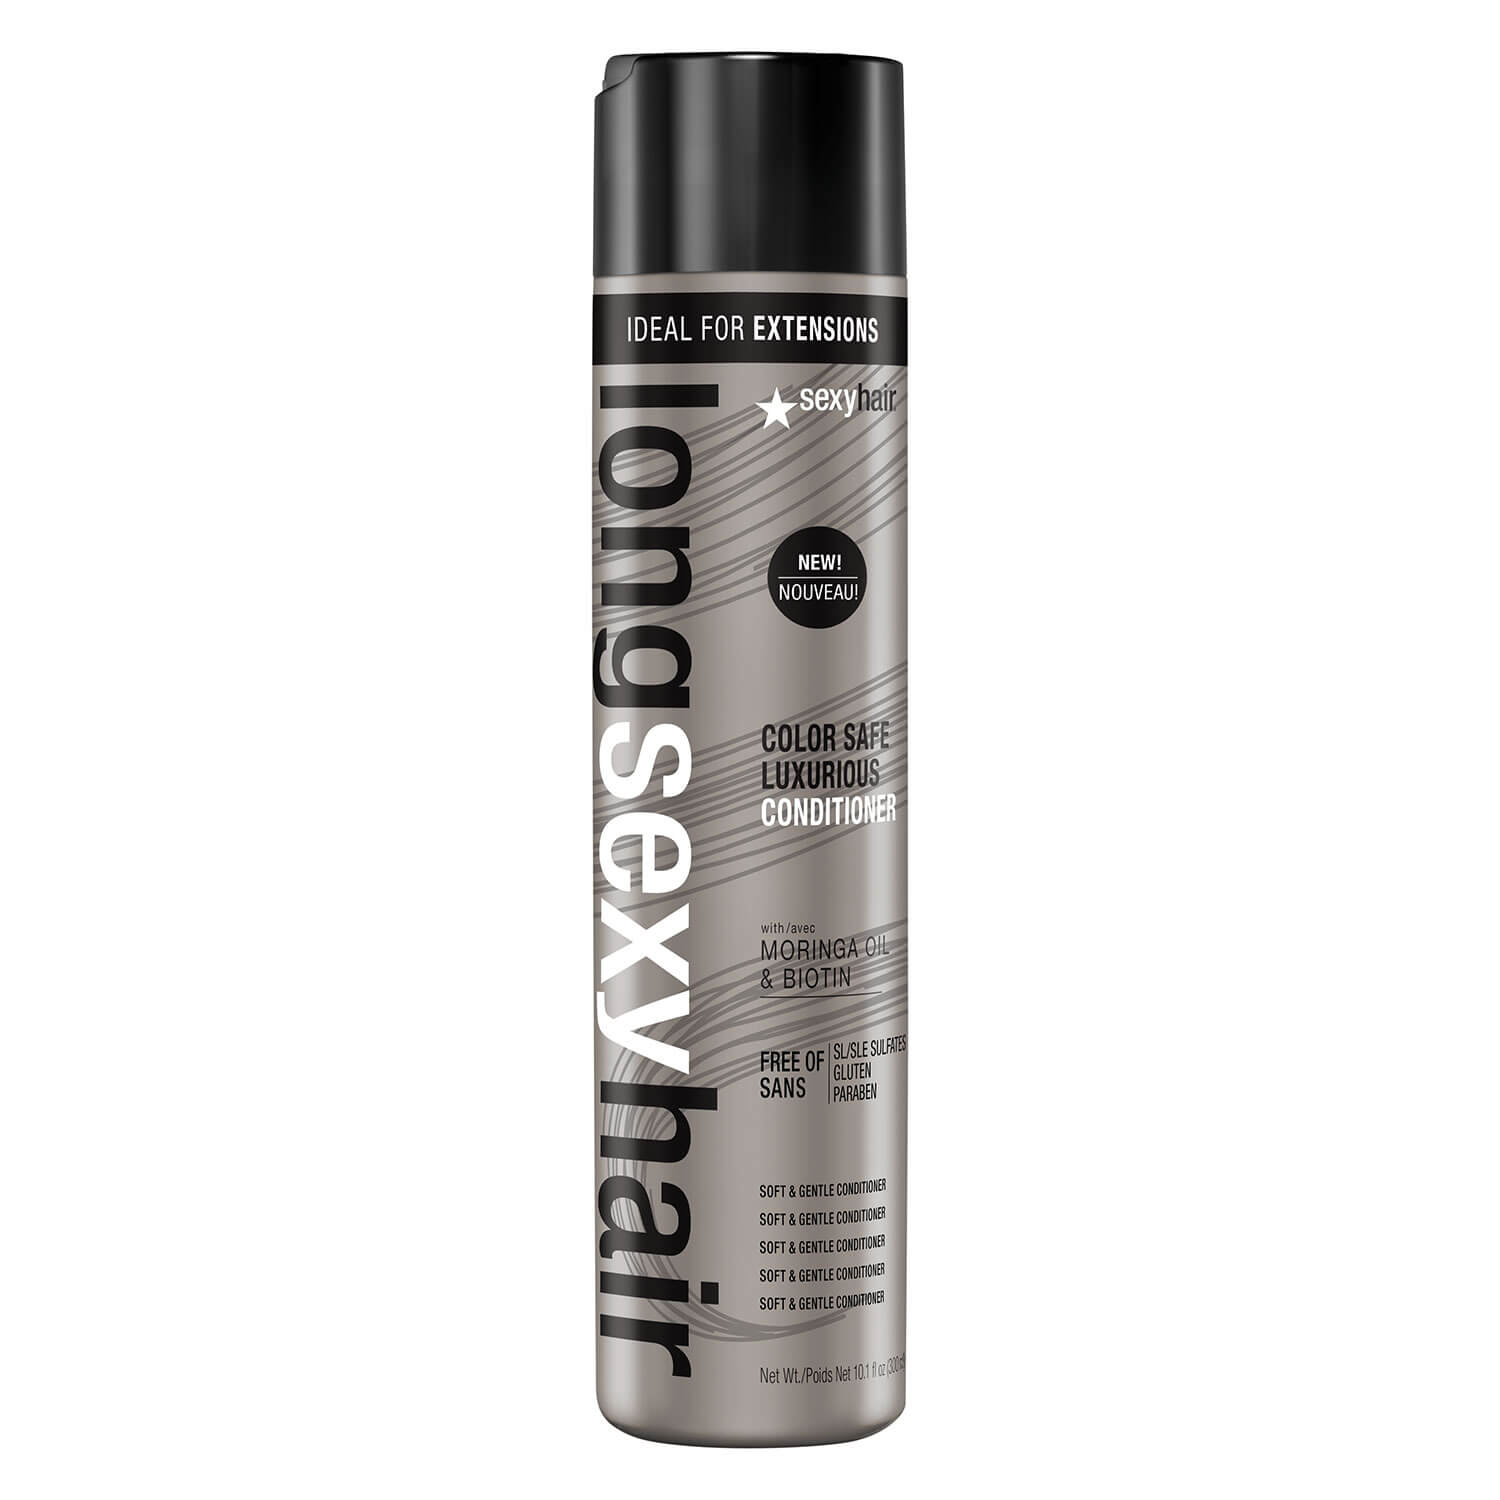 Long Sexy Hair - Luxurious Conditioner